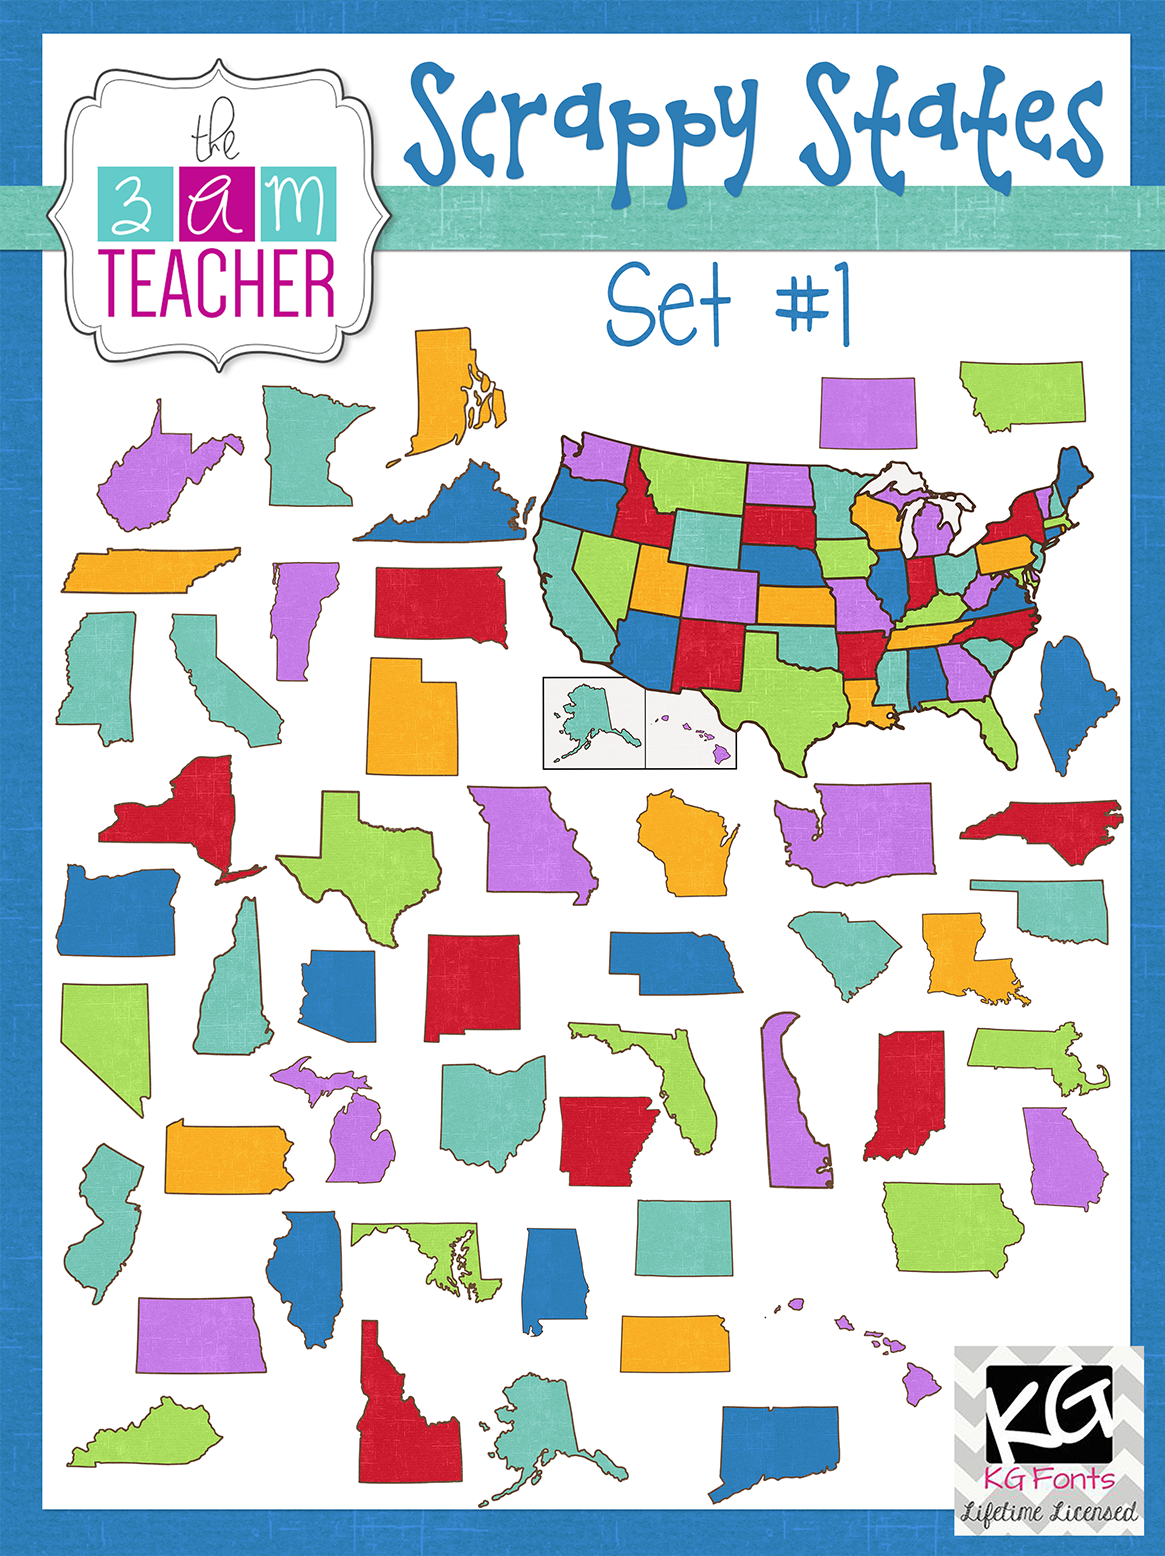 The 3am teacher new us states clipart a discount code a freebie off code and a couple of freebies to promote my new states clip art sets i have unlabeled states and labeled states in various styles for your to fandeluxe Image collections